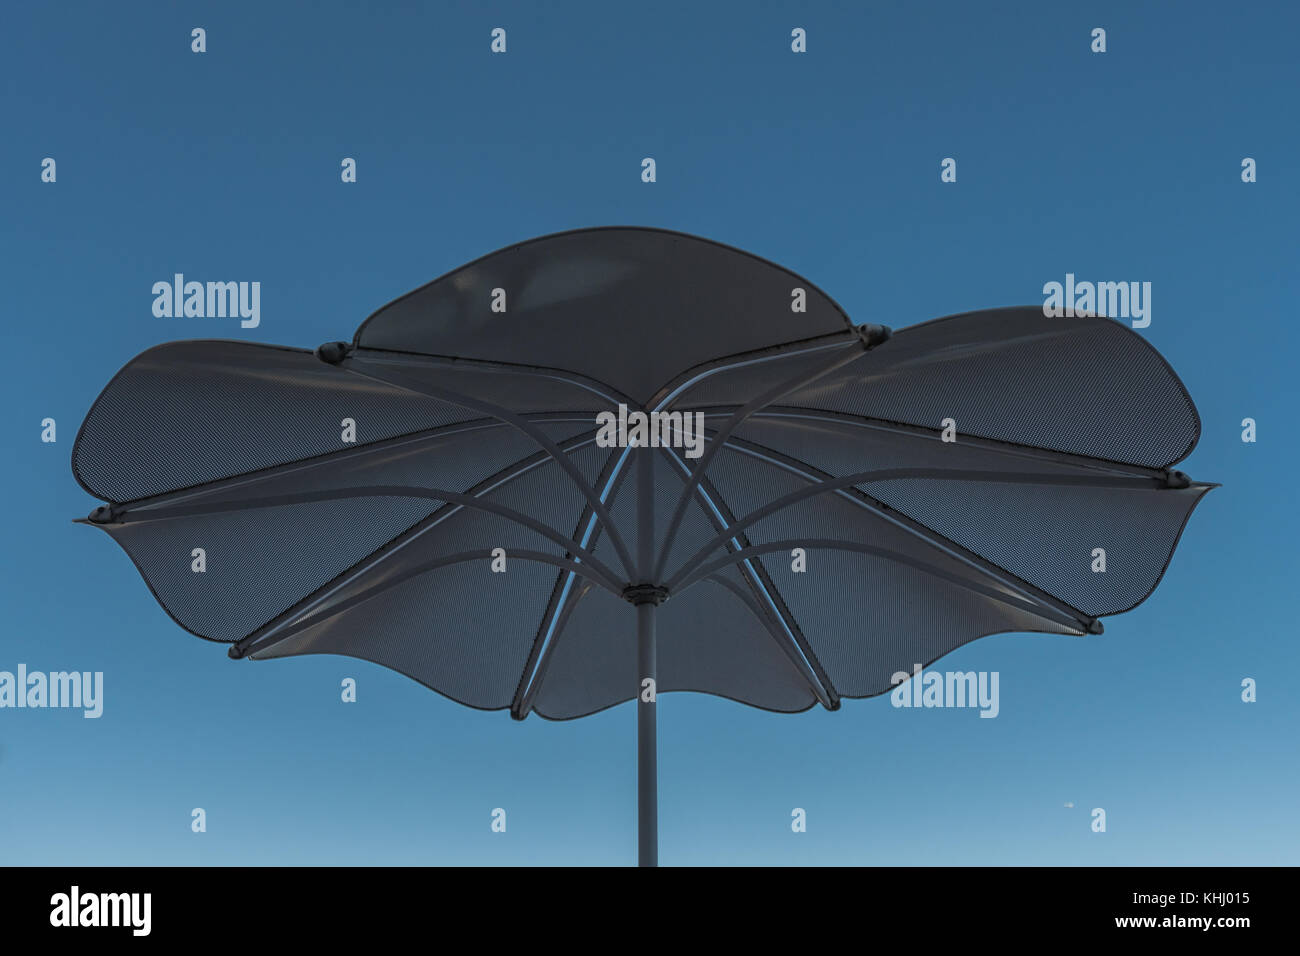 Looking Up into Shade Umbrella and Blue Sky - Stock Image